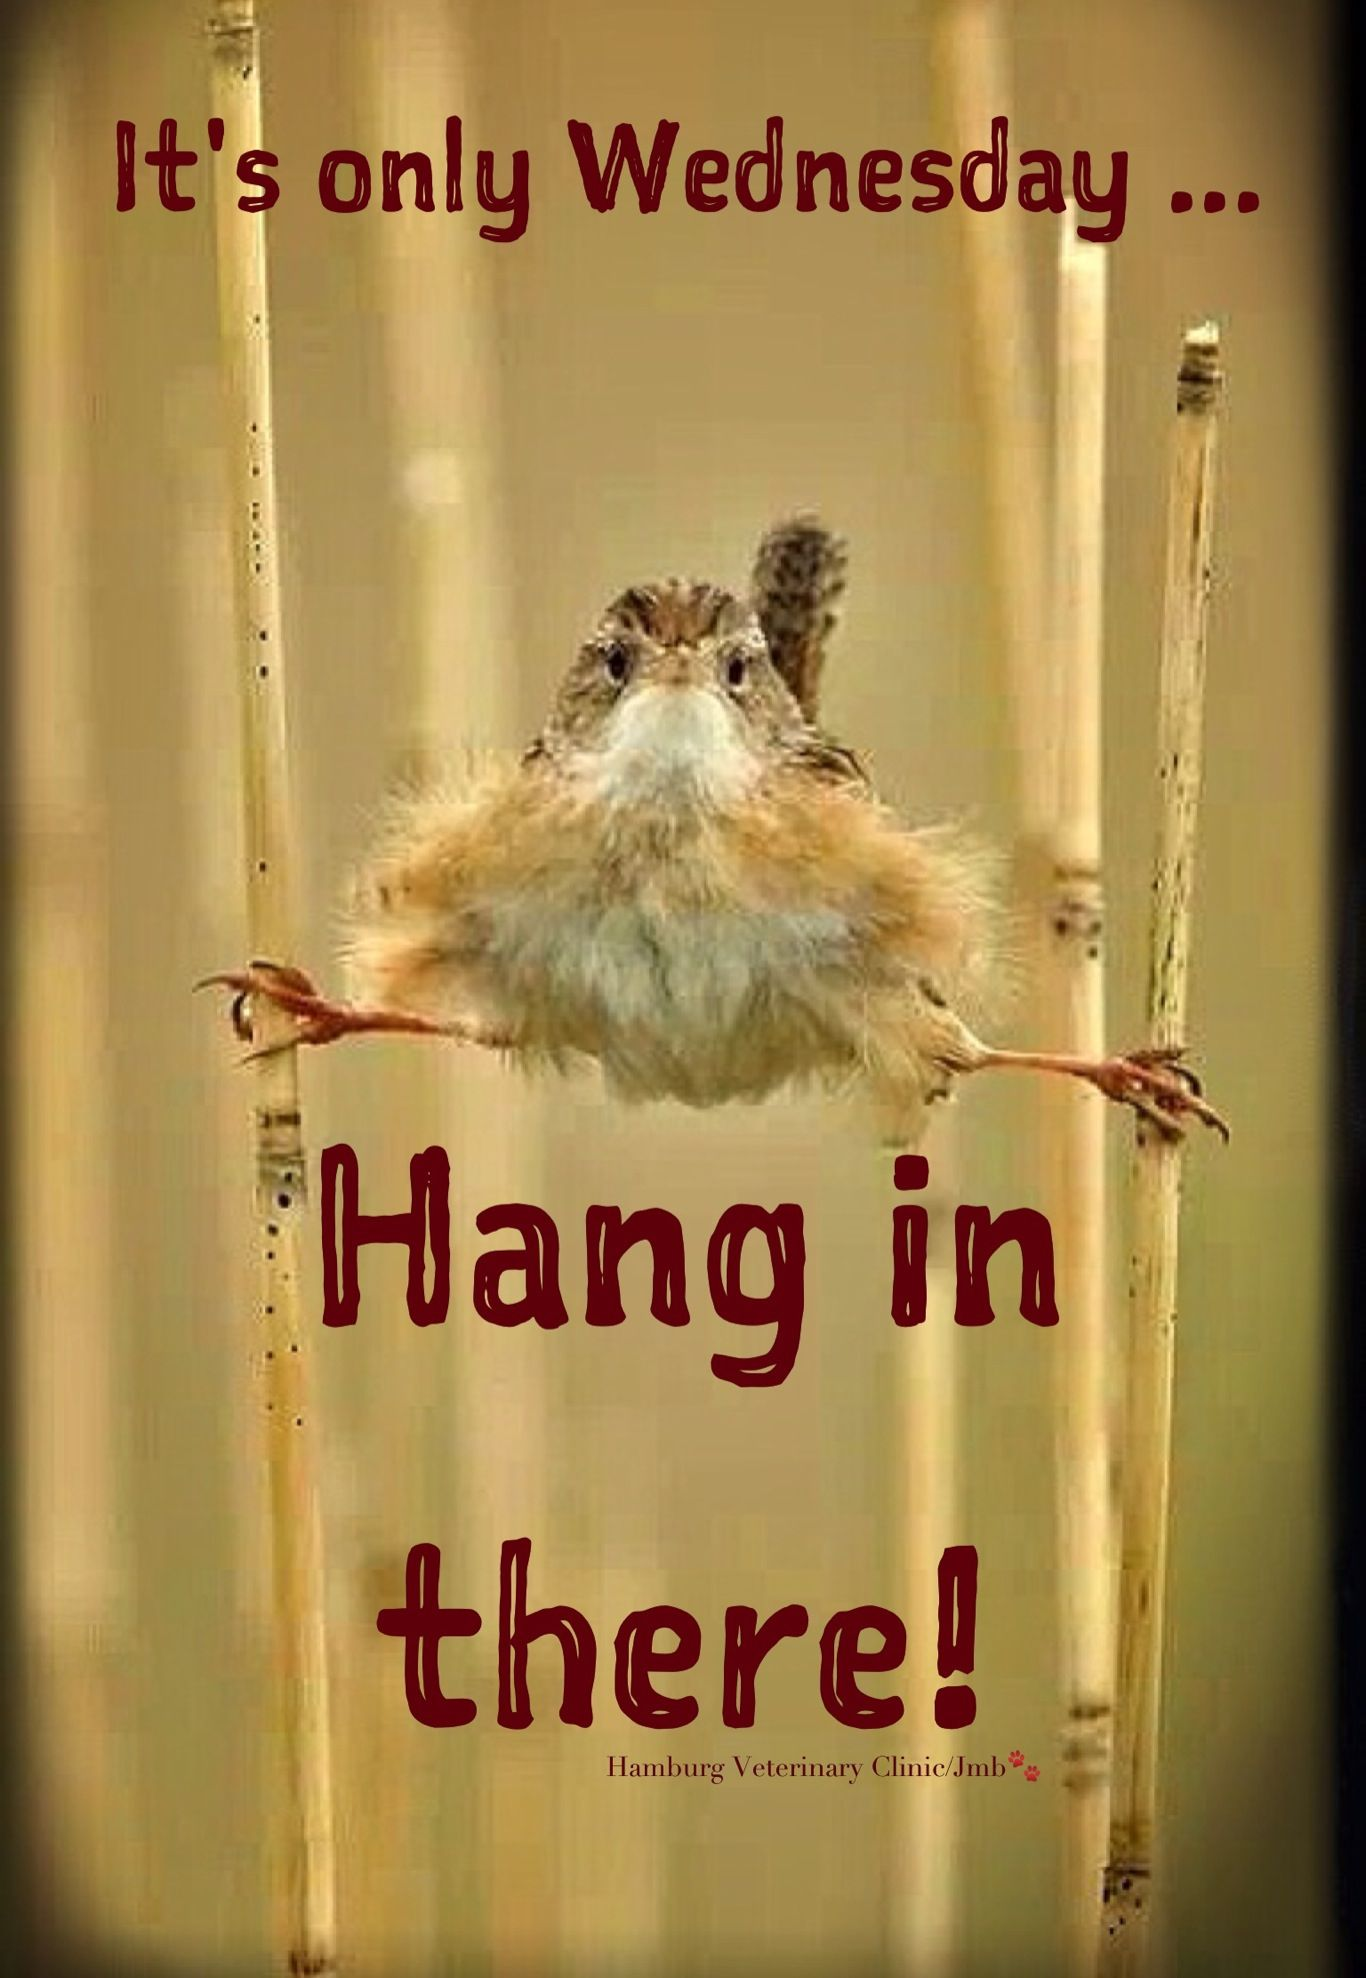 Wednesday Humor Animal Funny Happy Wednesday Hang In There The